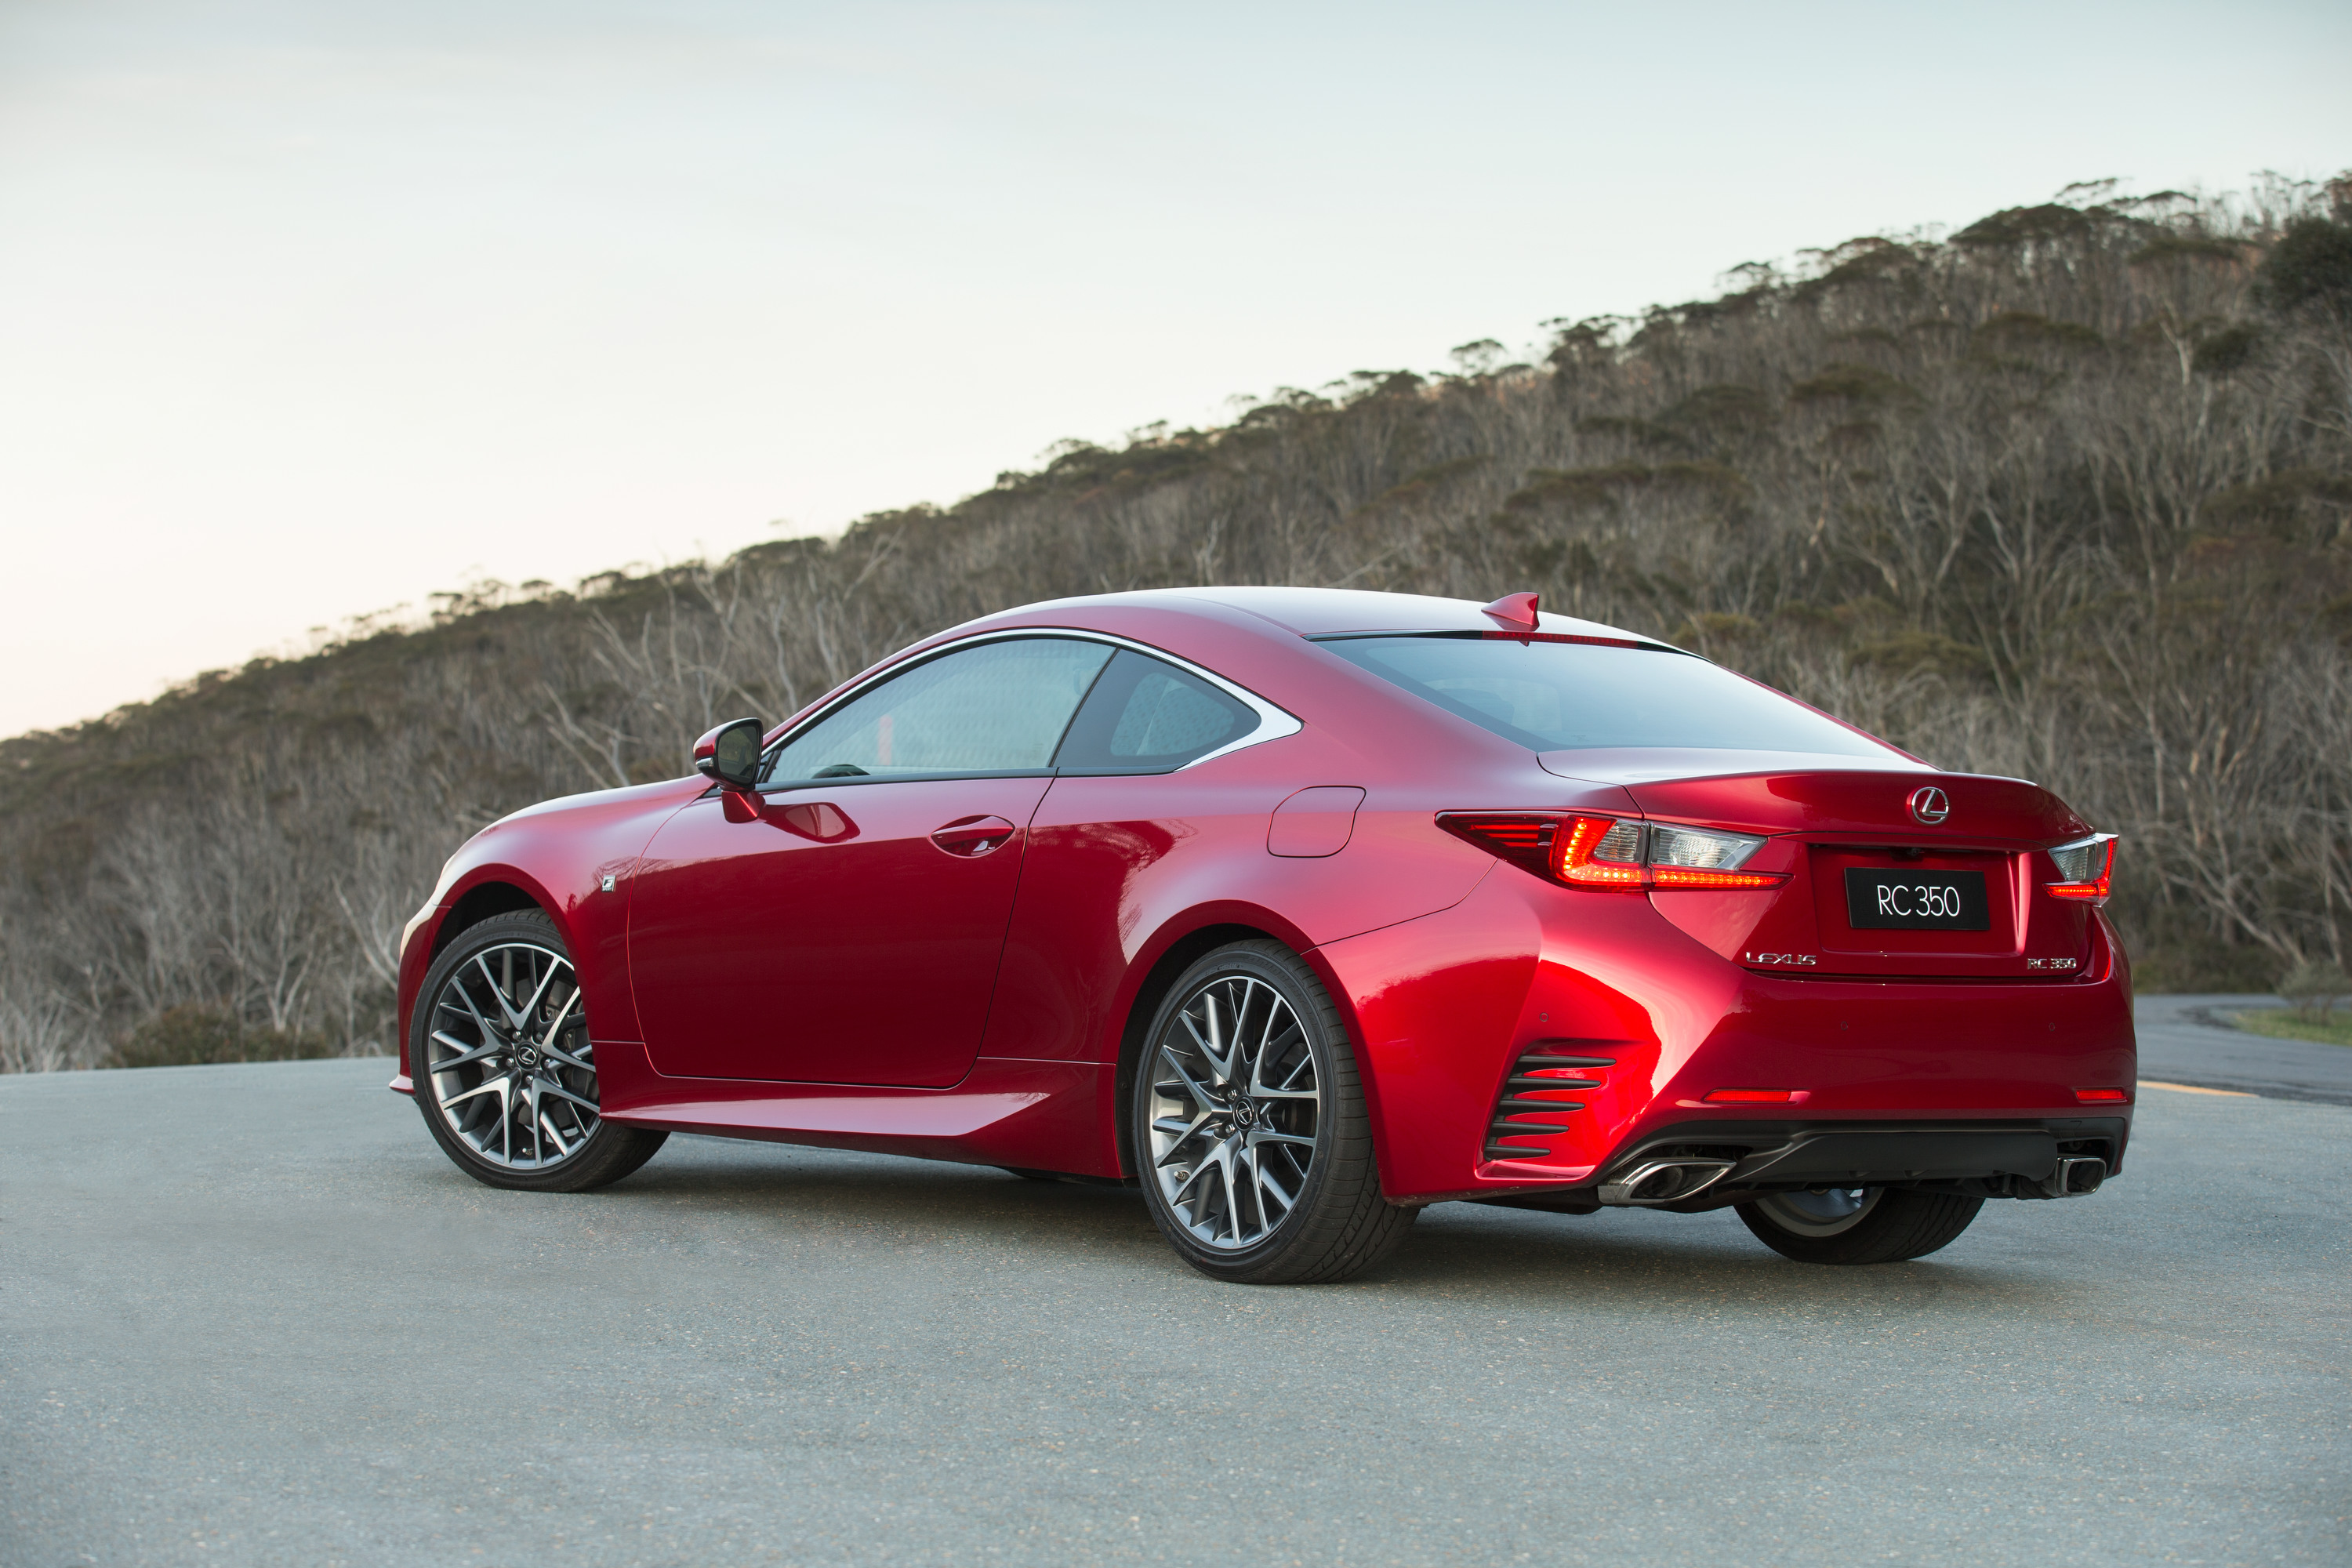 2018 Honda Civic Type R Specs >> Lexus RC350 coupe lands from a sharp $66K - photos | CarAdvice